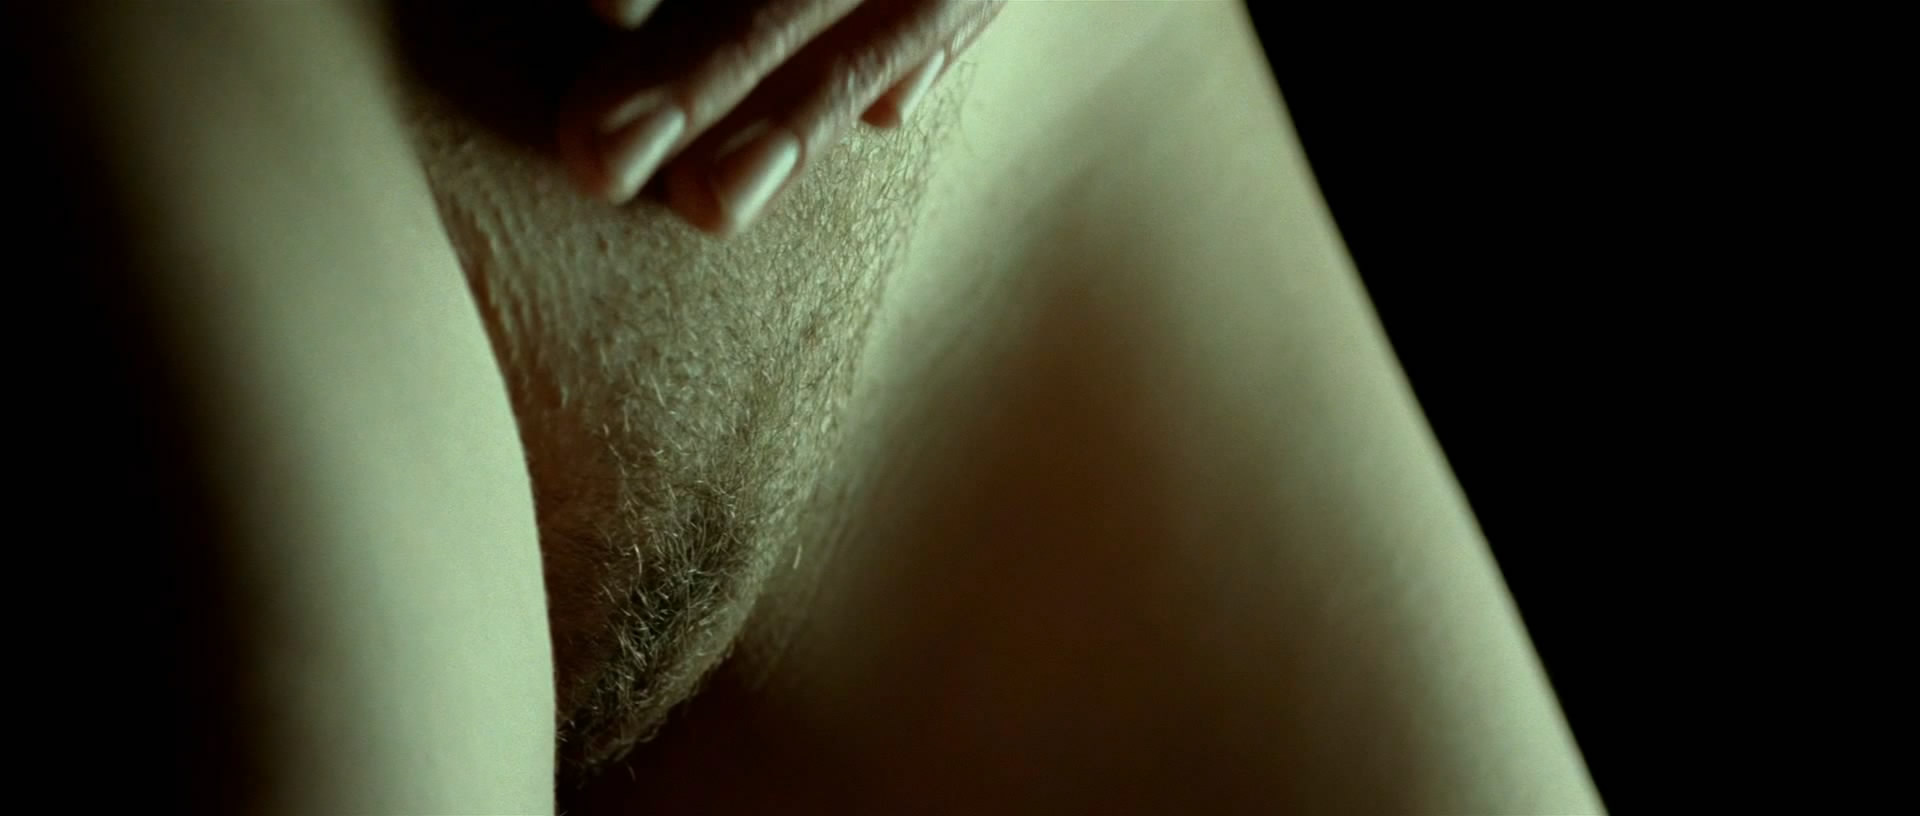 Alba ribas nude sex scene in diario de una ninfomana movie